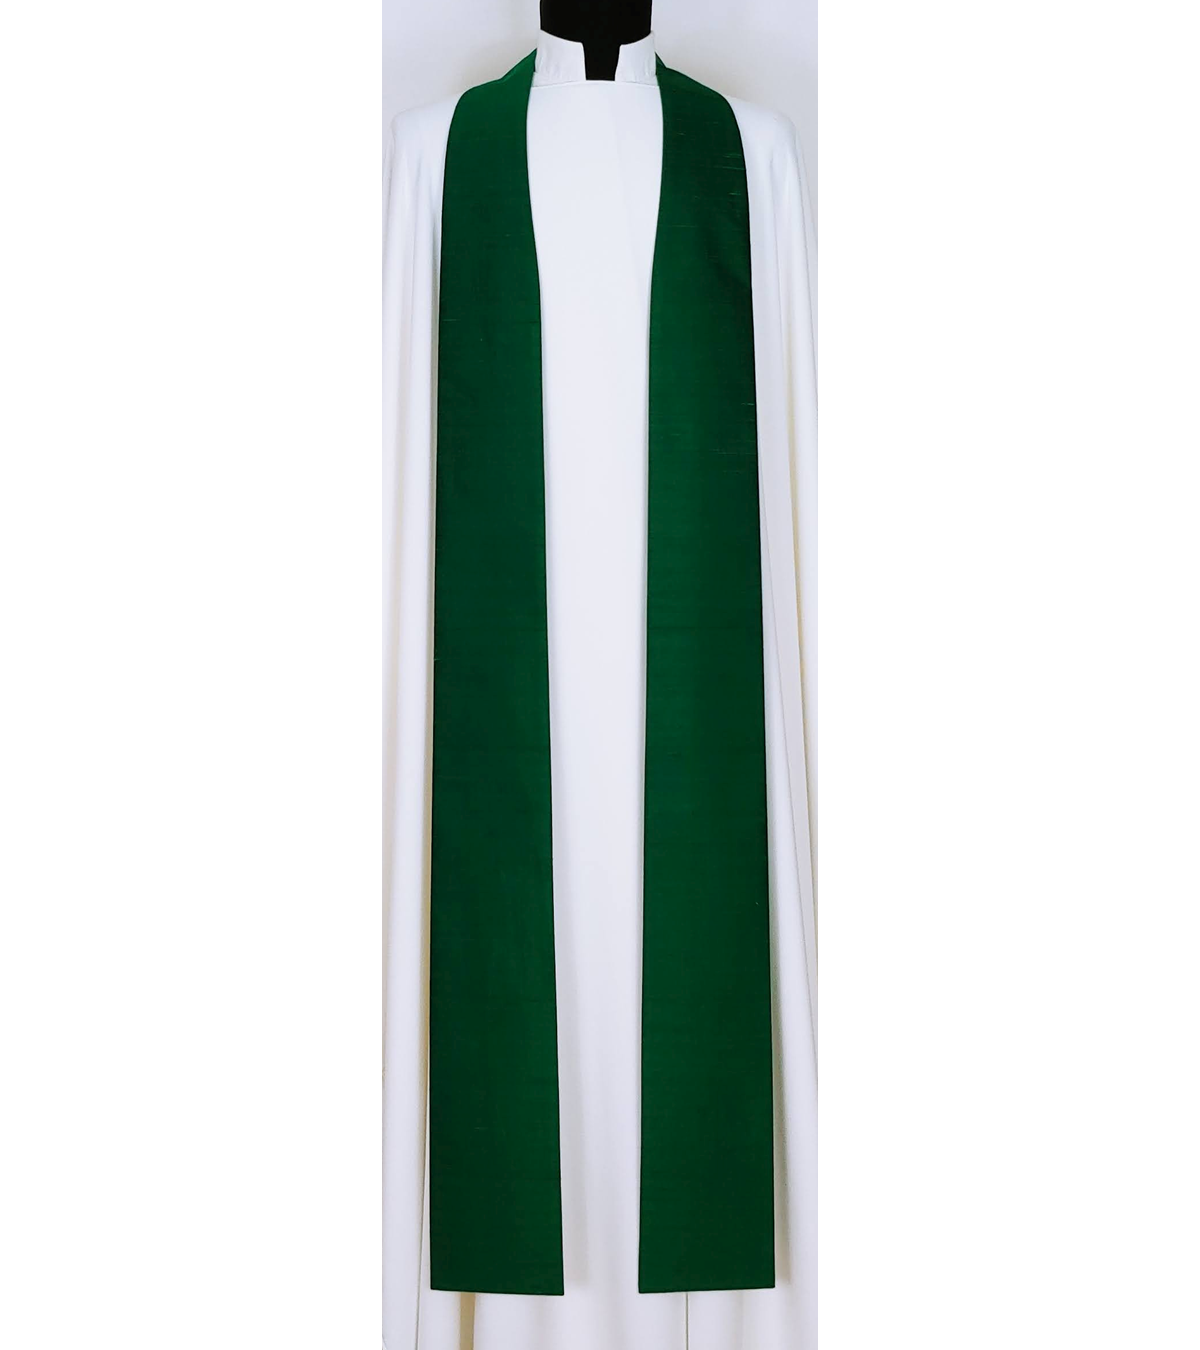 Simply Silk: Plain Green Clergy Stole -- Keep it Simple, or Add Your Own Design!